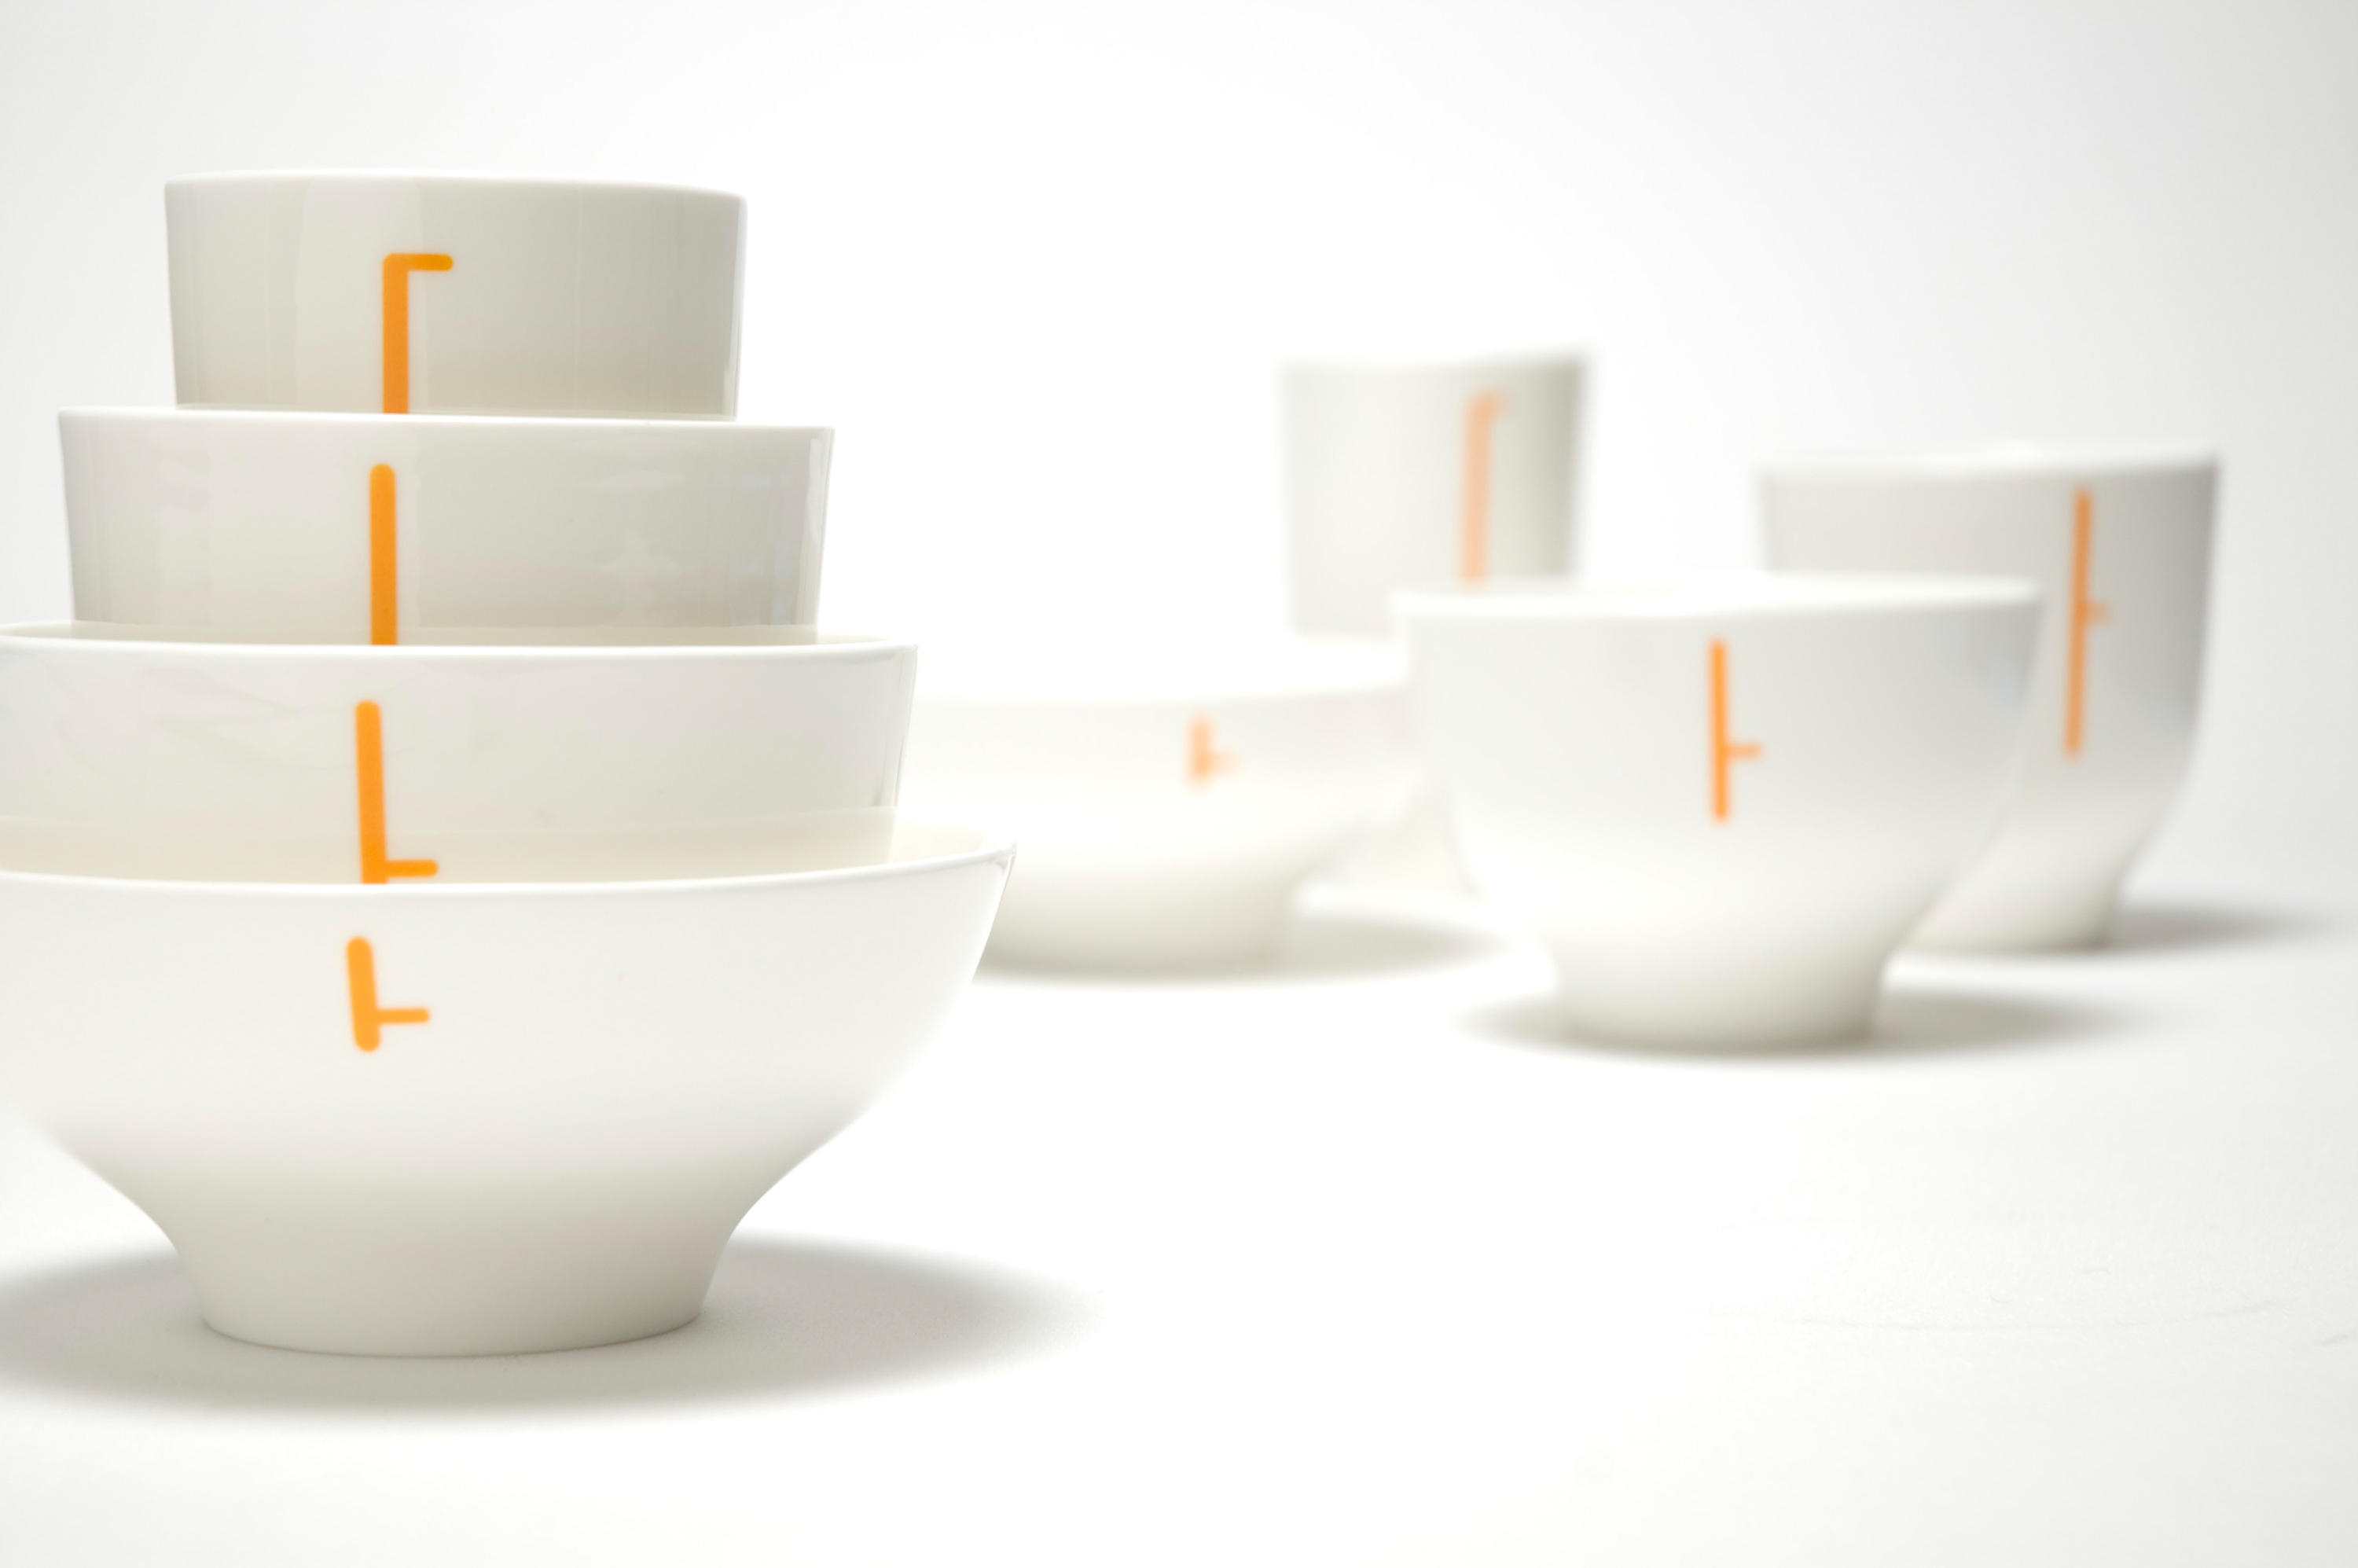 FAMILY TEA CUP Bowls from Covo Architonic : famillycup 01 b from www.architonic.com size 3000 x 1995 jpeg 142kB